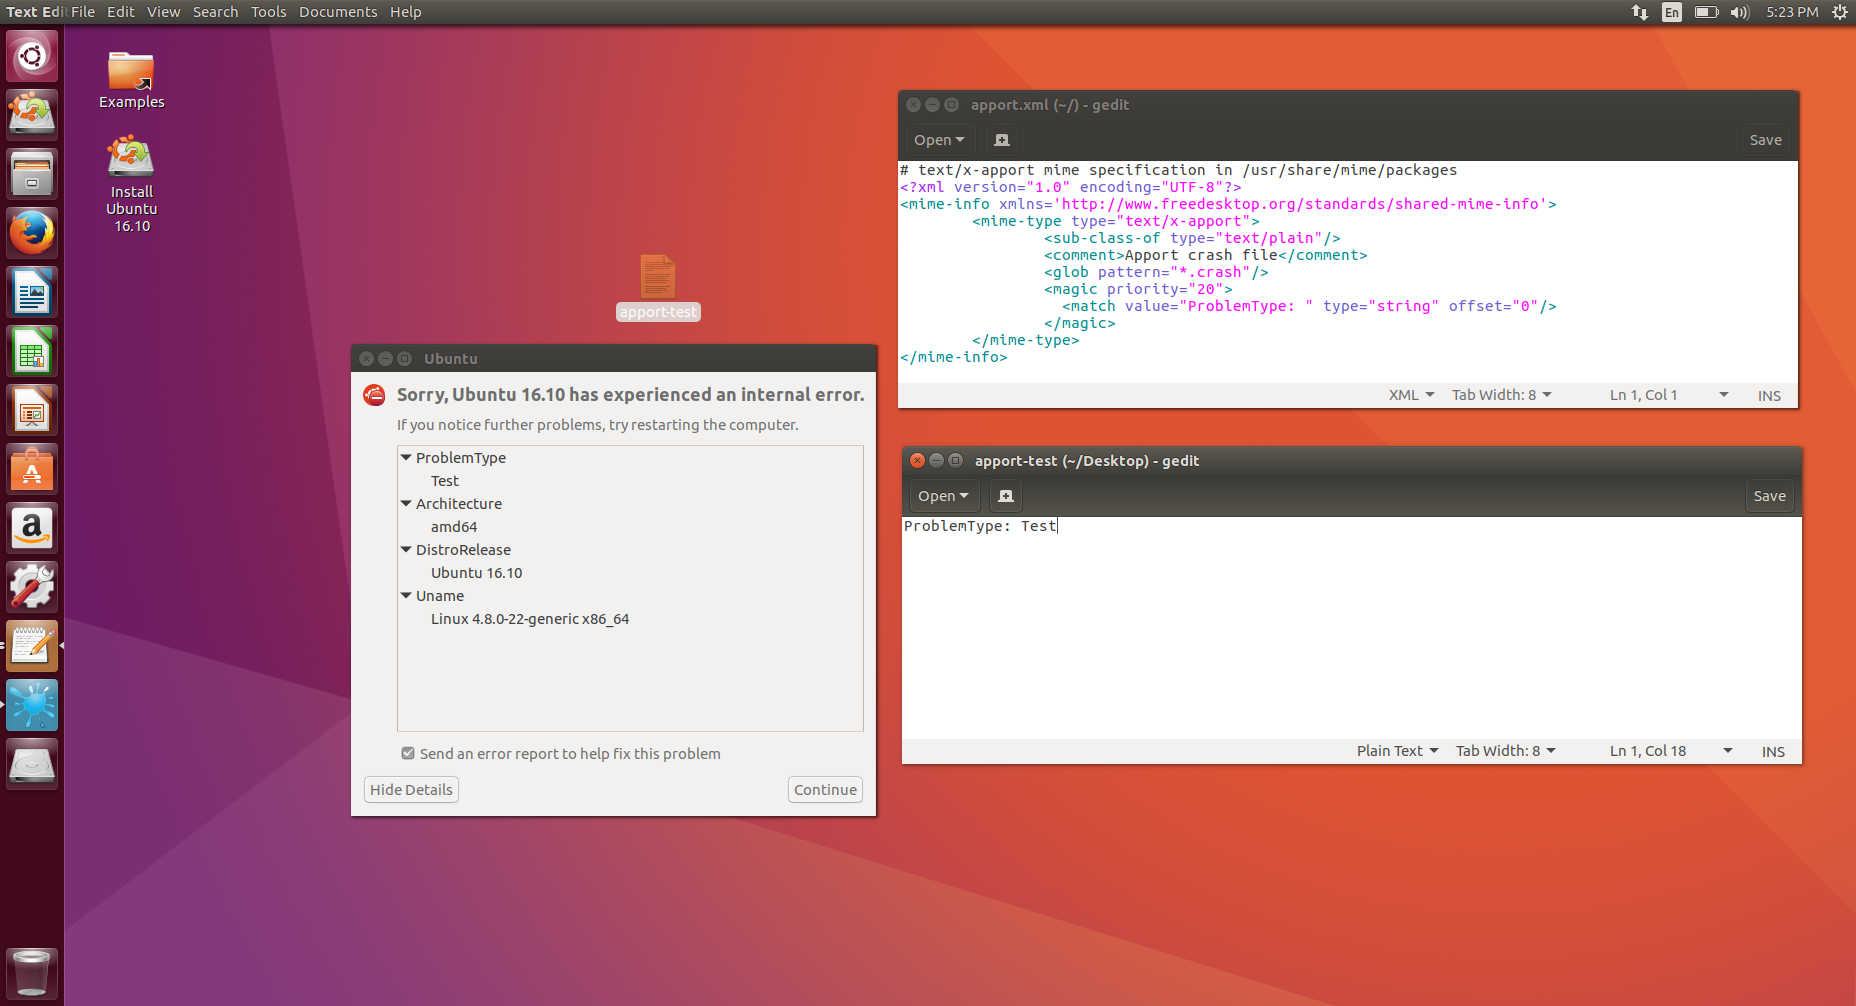 Reliably compromising Ubuntu desktops by attacking the crash